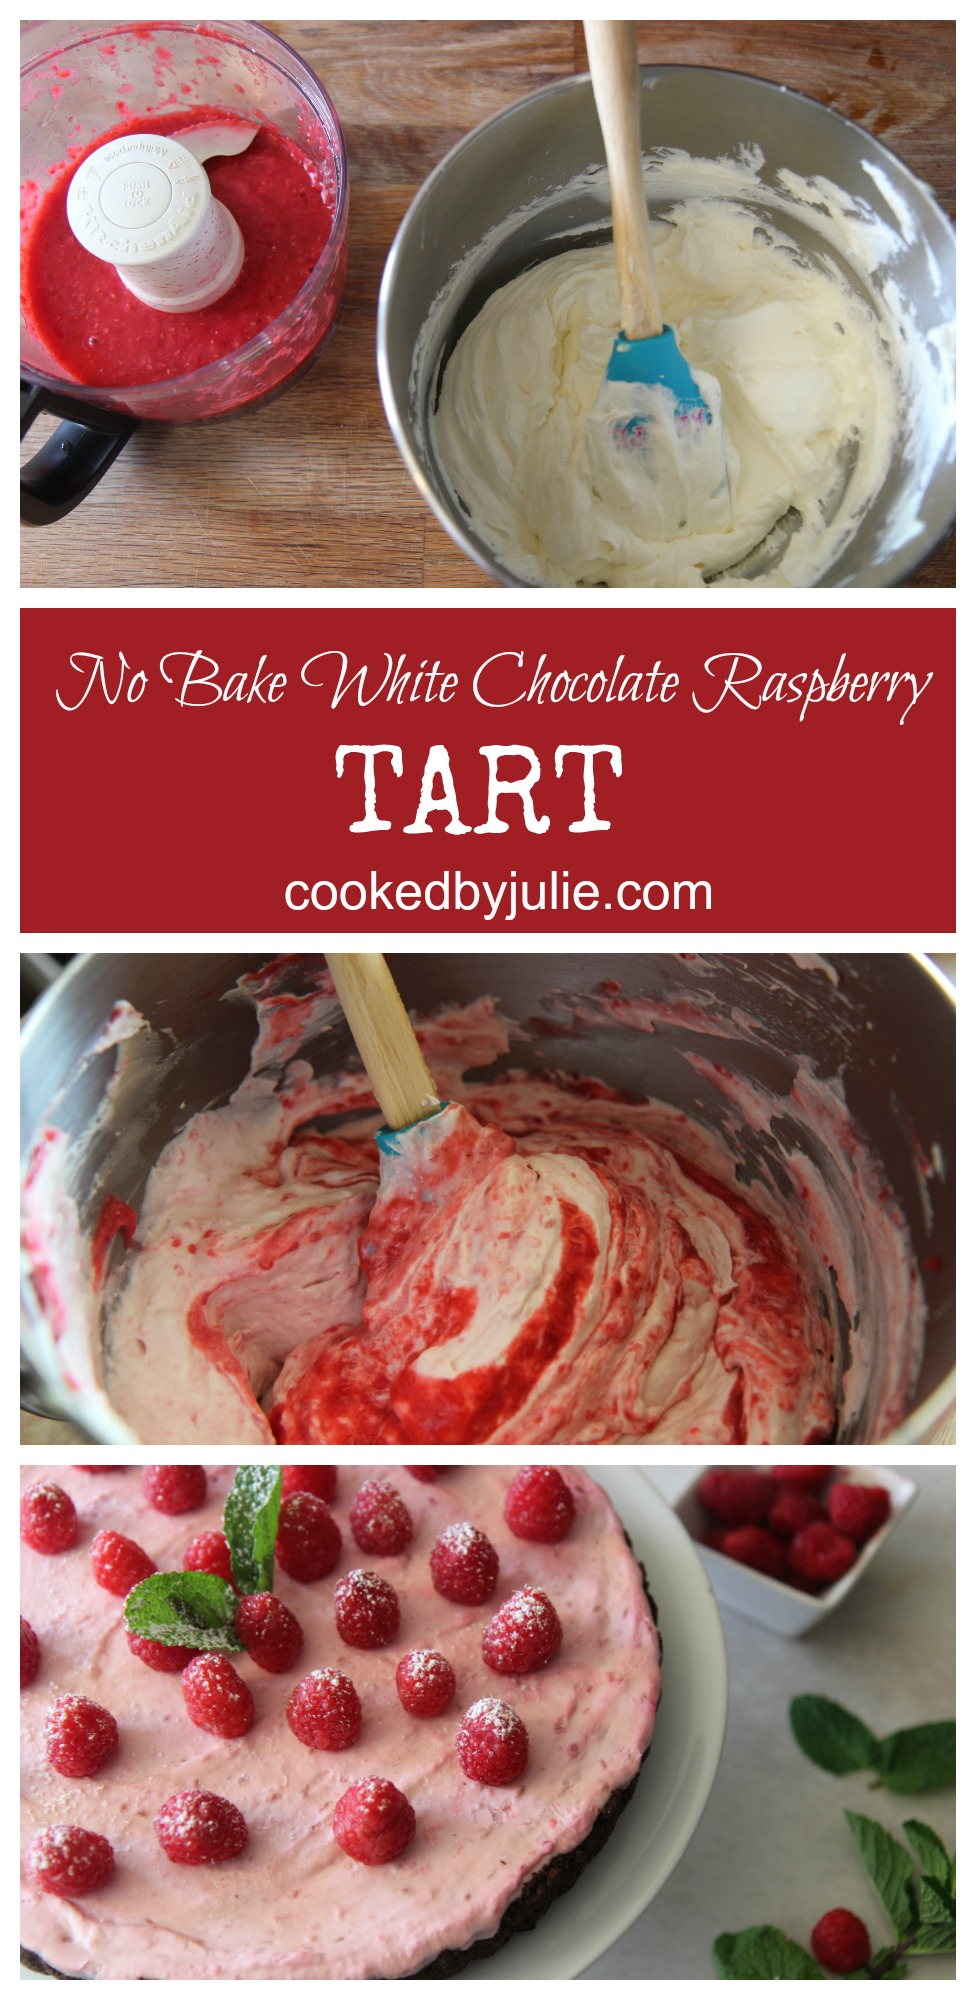 No Bake White Chocolate Raspberry Tart | Dessert Recipe from Cooked By Julie | Video Recipe